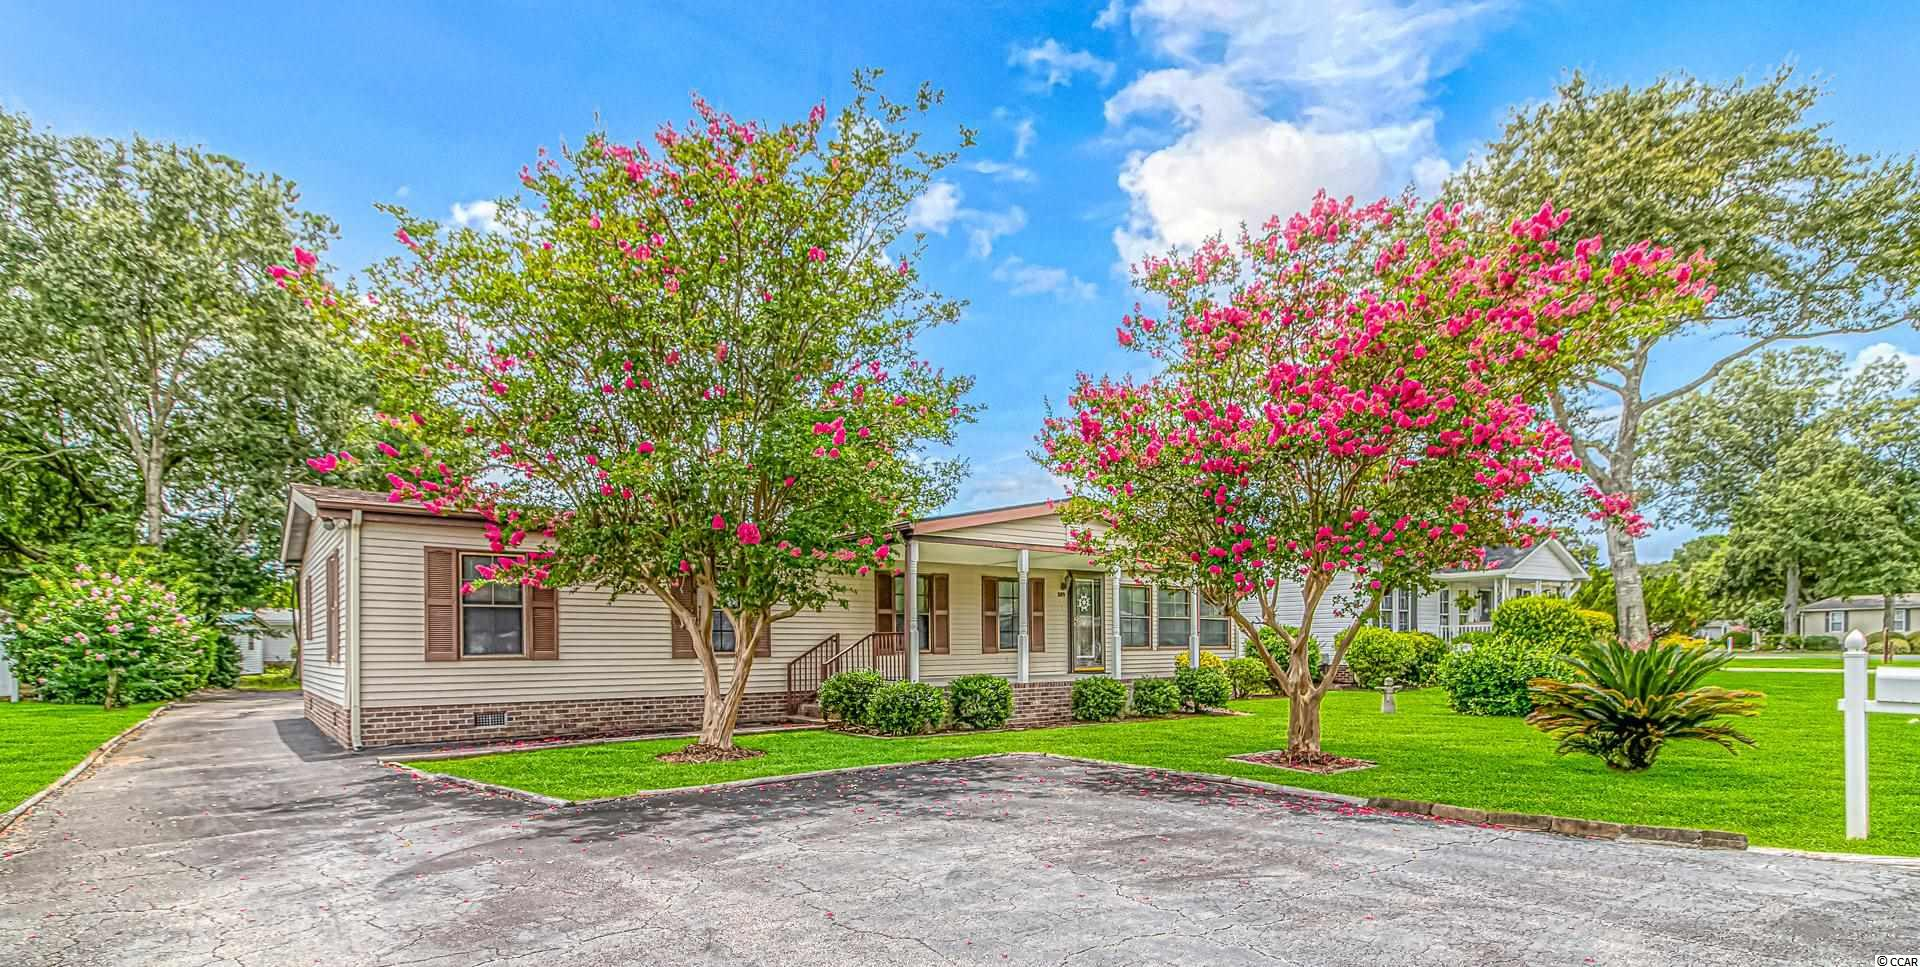 Open House Sunday September 12th 1-4 pm Welcome to your Forever Home at the Beach. This Beautiful 3 Bedroom 2 Bath also features a spacious office (currently setup as a 4th bedroom) with French Doors leading to the living room. Your new home also features an oversized 2 car garage behind the home which offers storage and privacy. The Live Oak community is a rare 55 and older where you own your land and still have a fantastic community with a pool and recreation center.